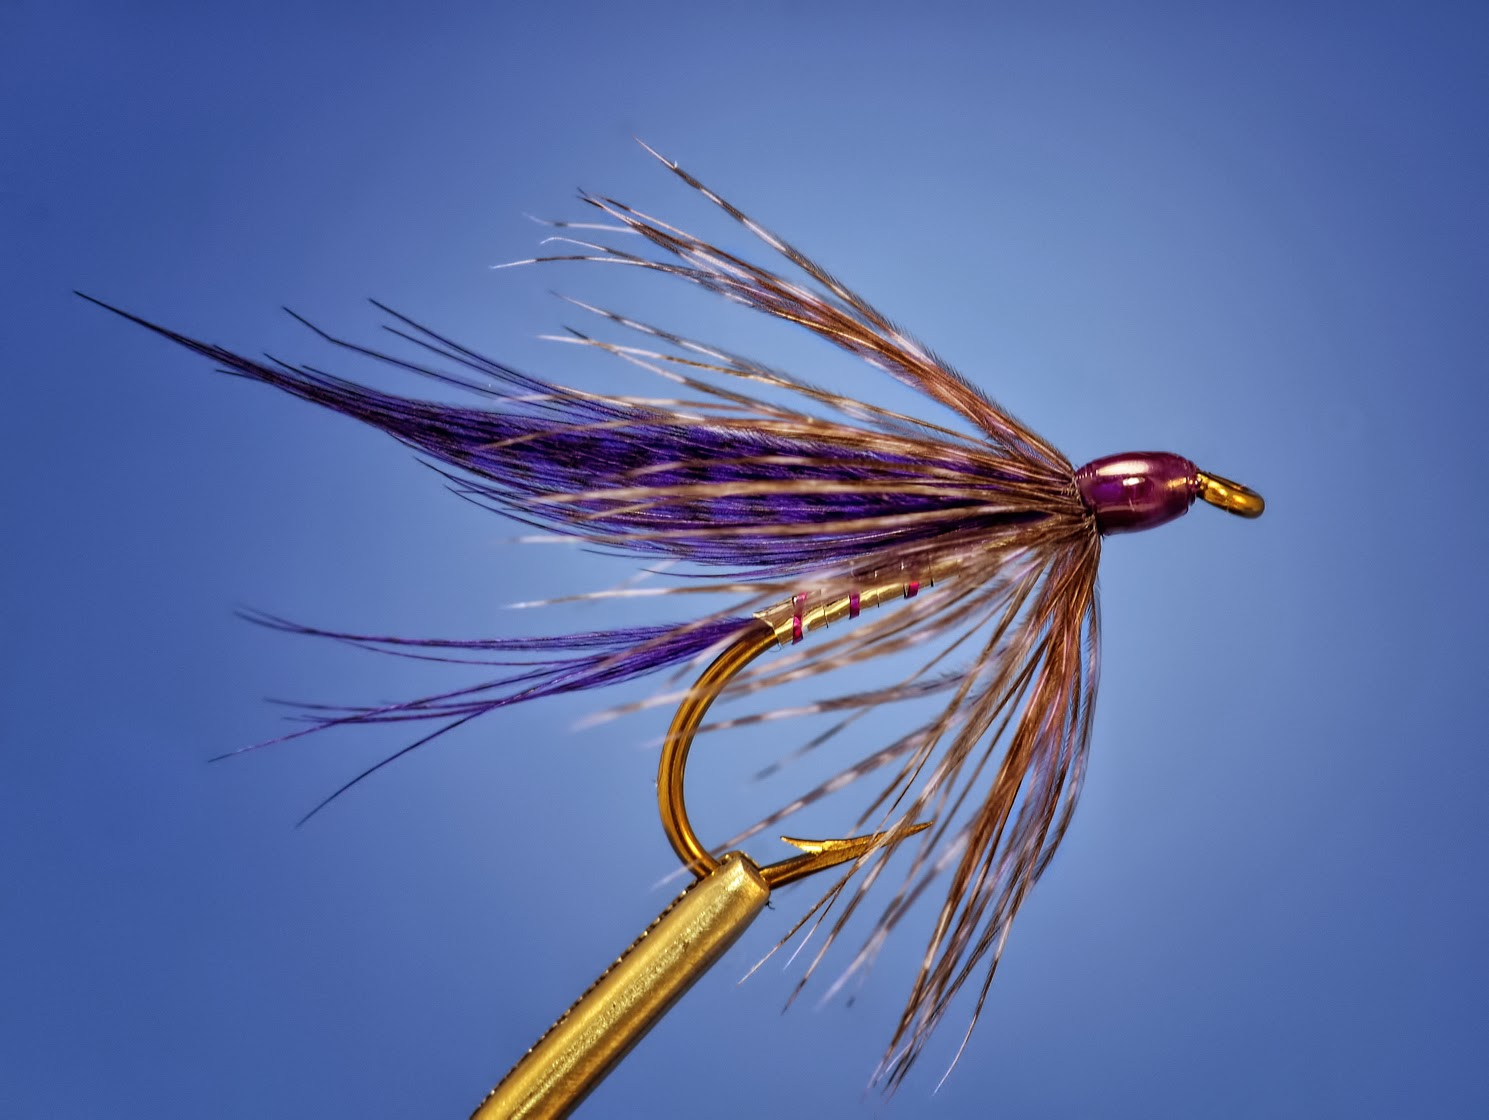 Classic wet flies fly fish food fly tying and fly fishing for Wet fly fishing